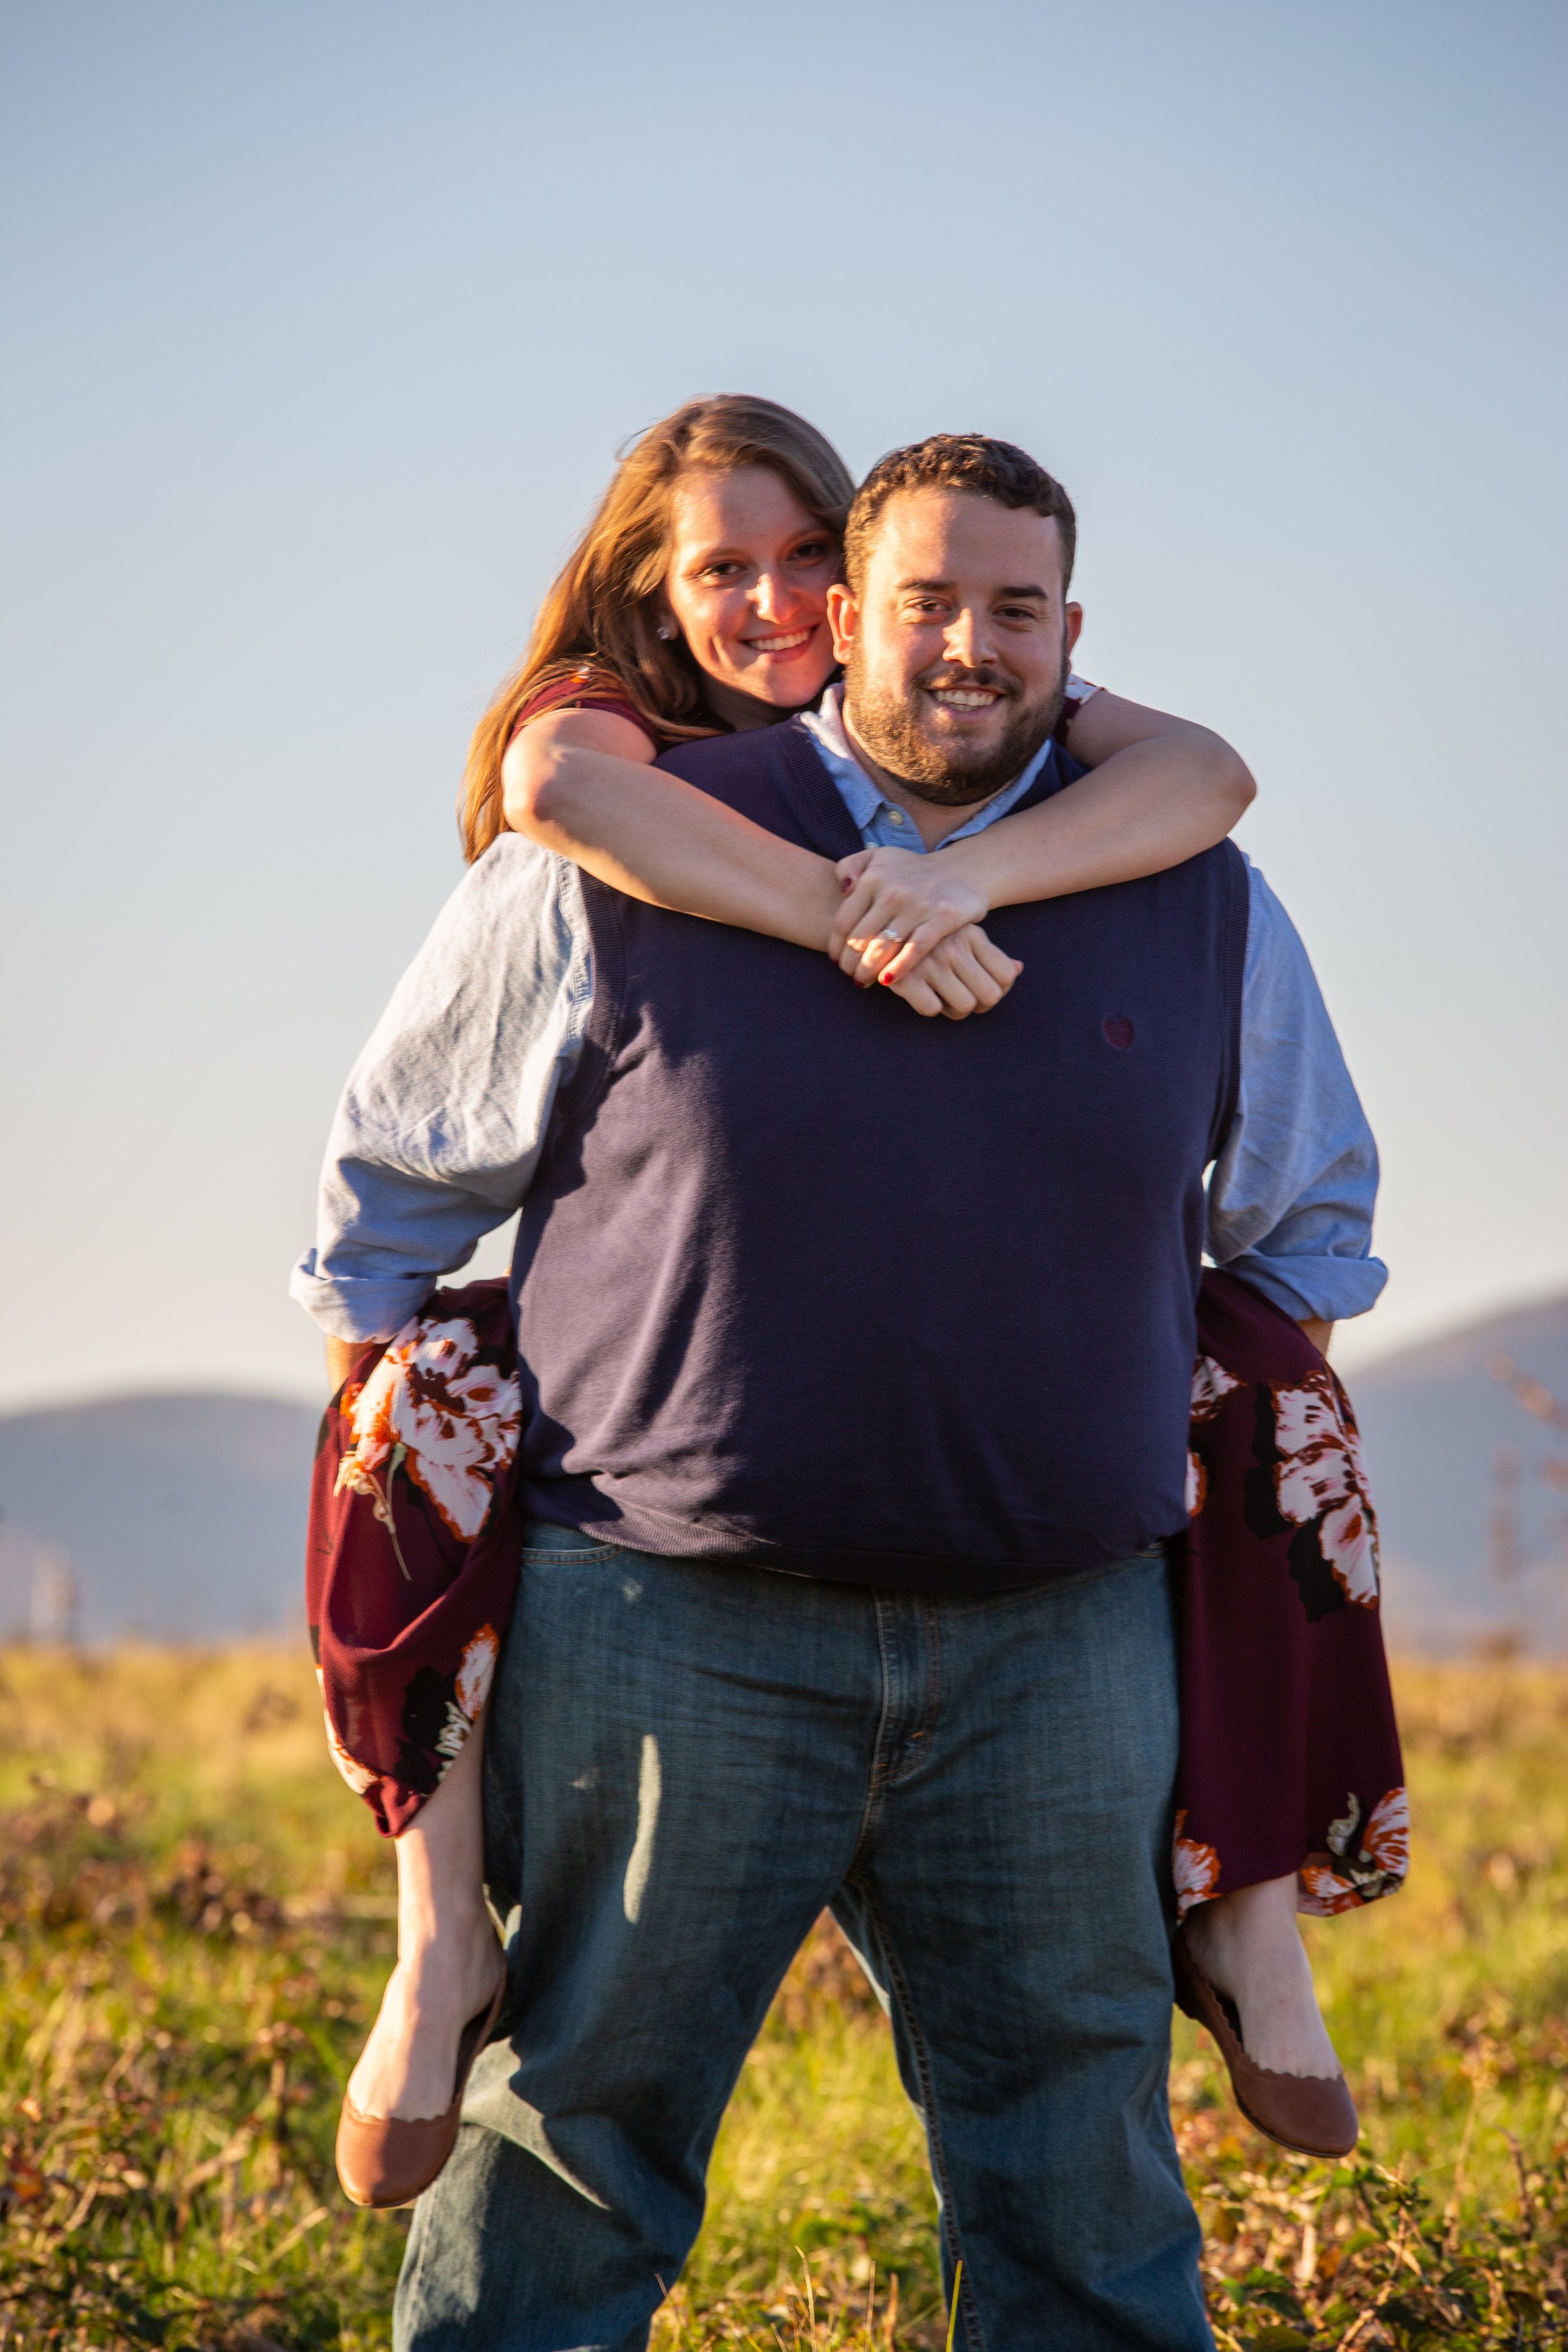 Sunset-Roanoke-shakers-field-flare-airport-love-together-virginia-photography-shoot-together-piggyback